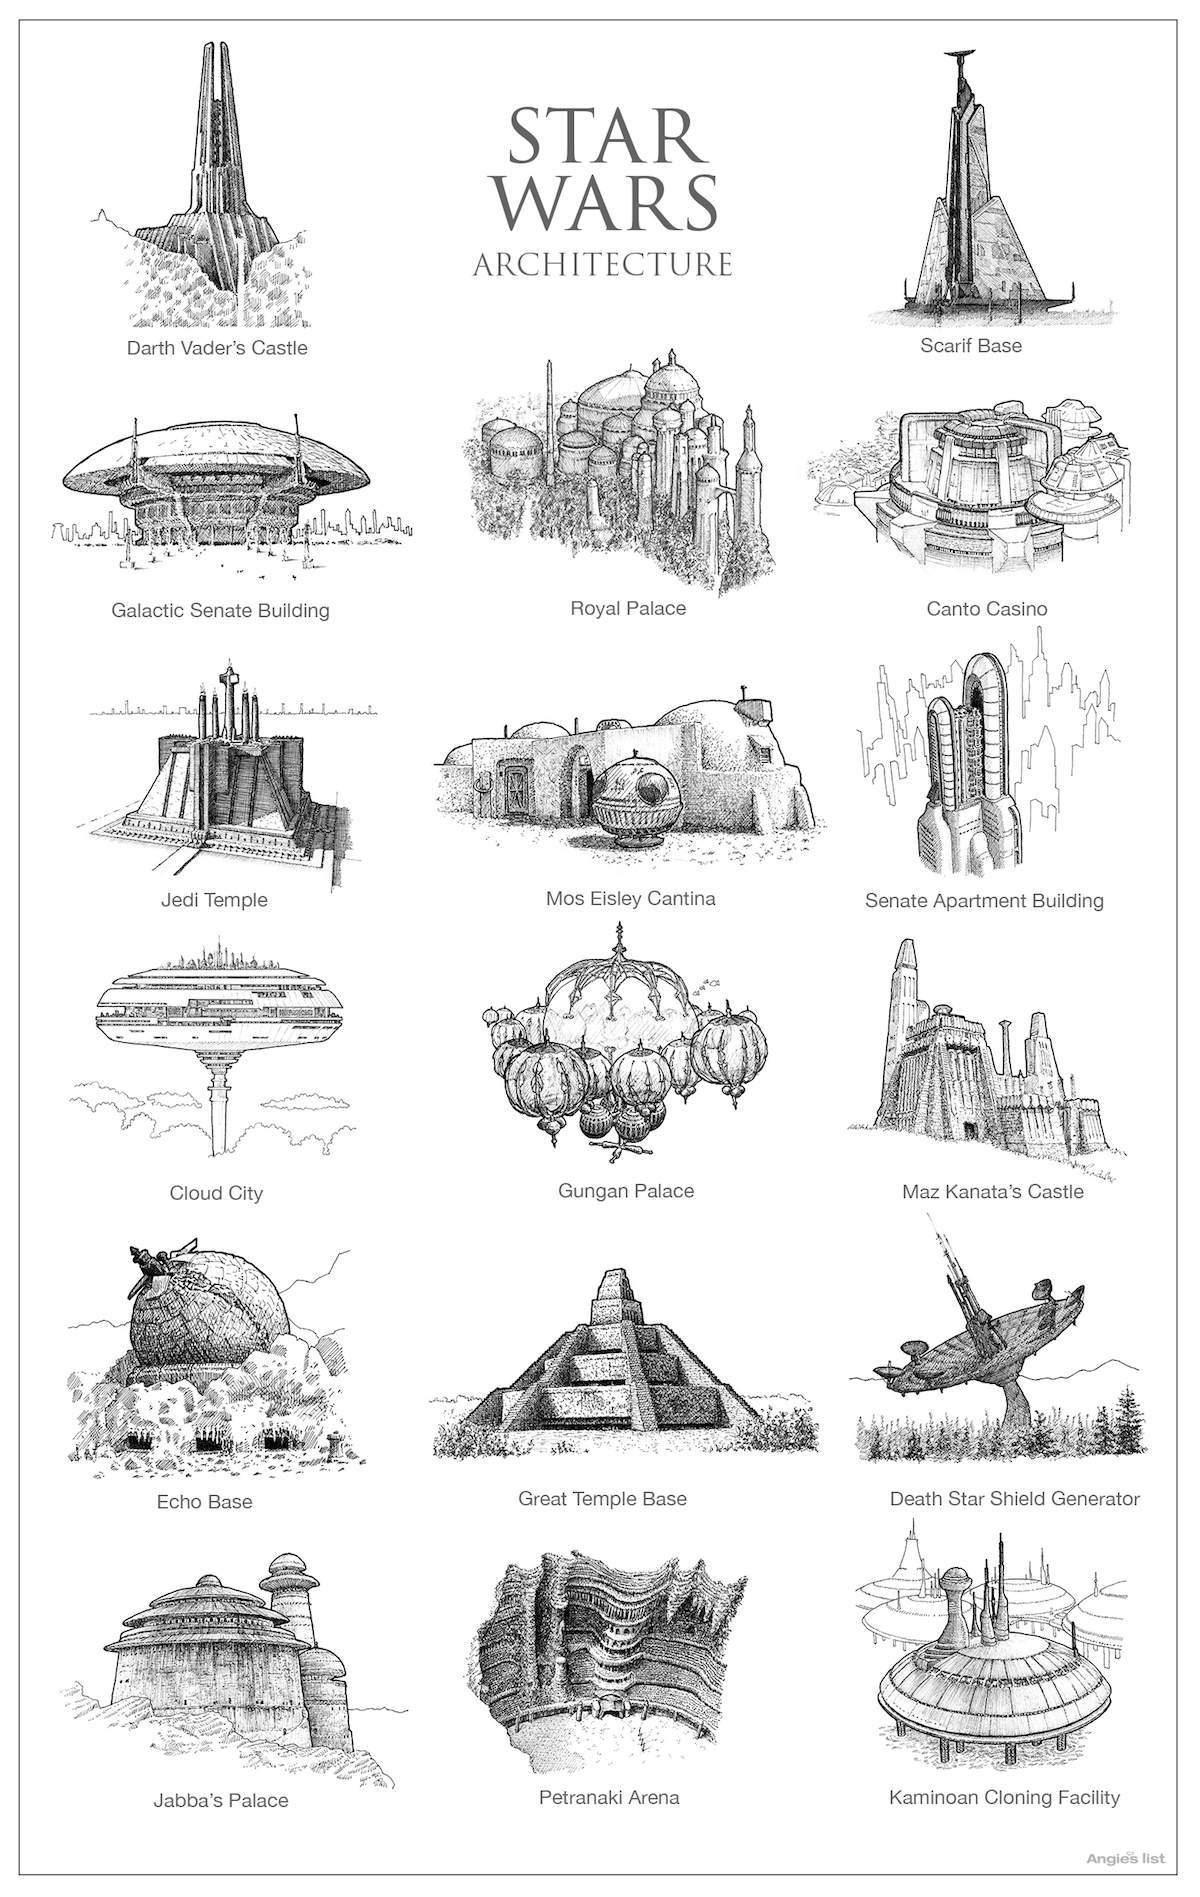 Illustration of Star Wars Architecture